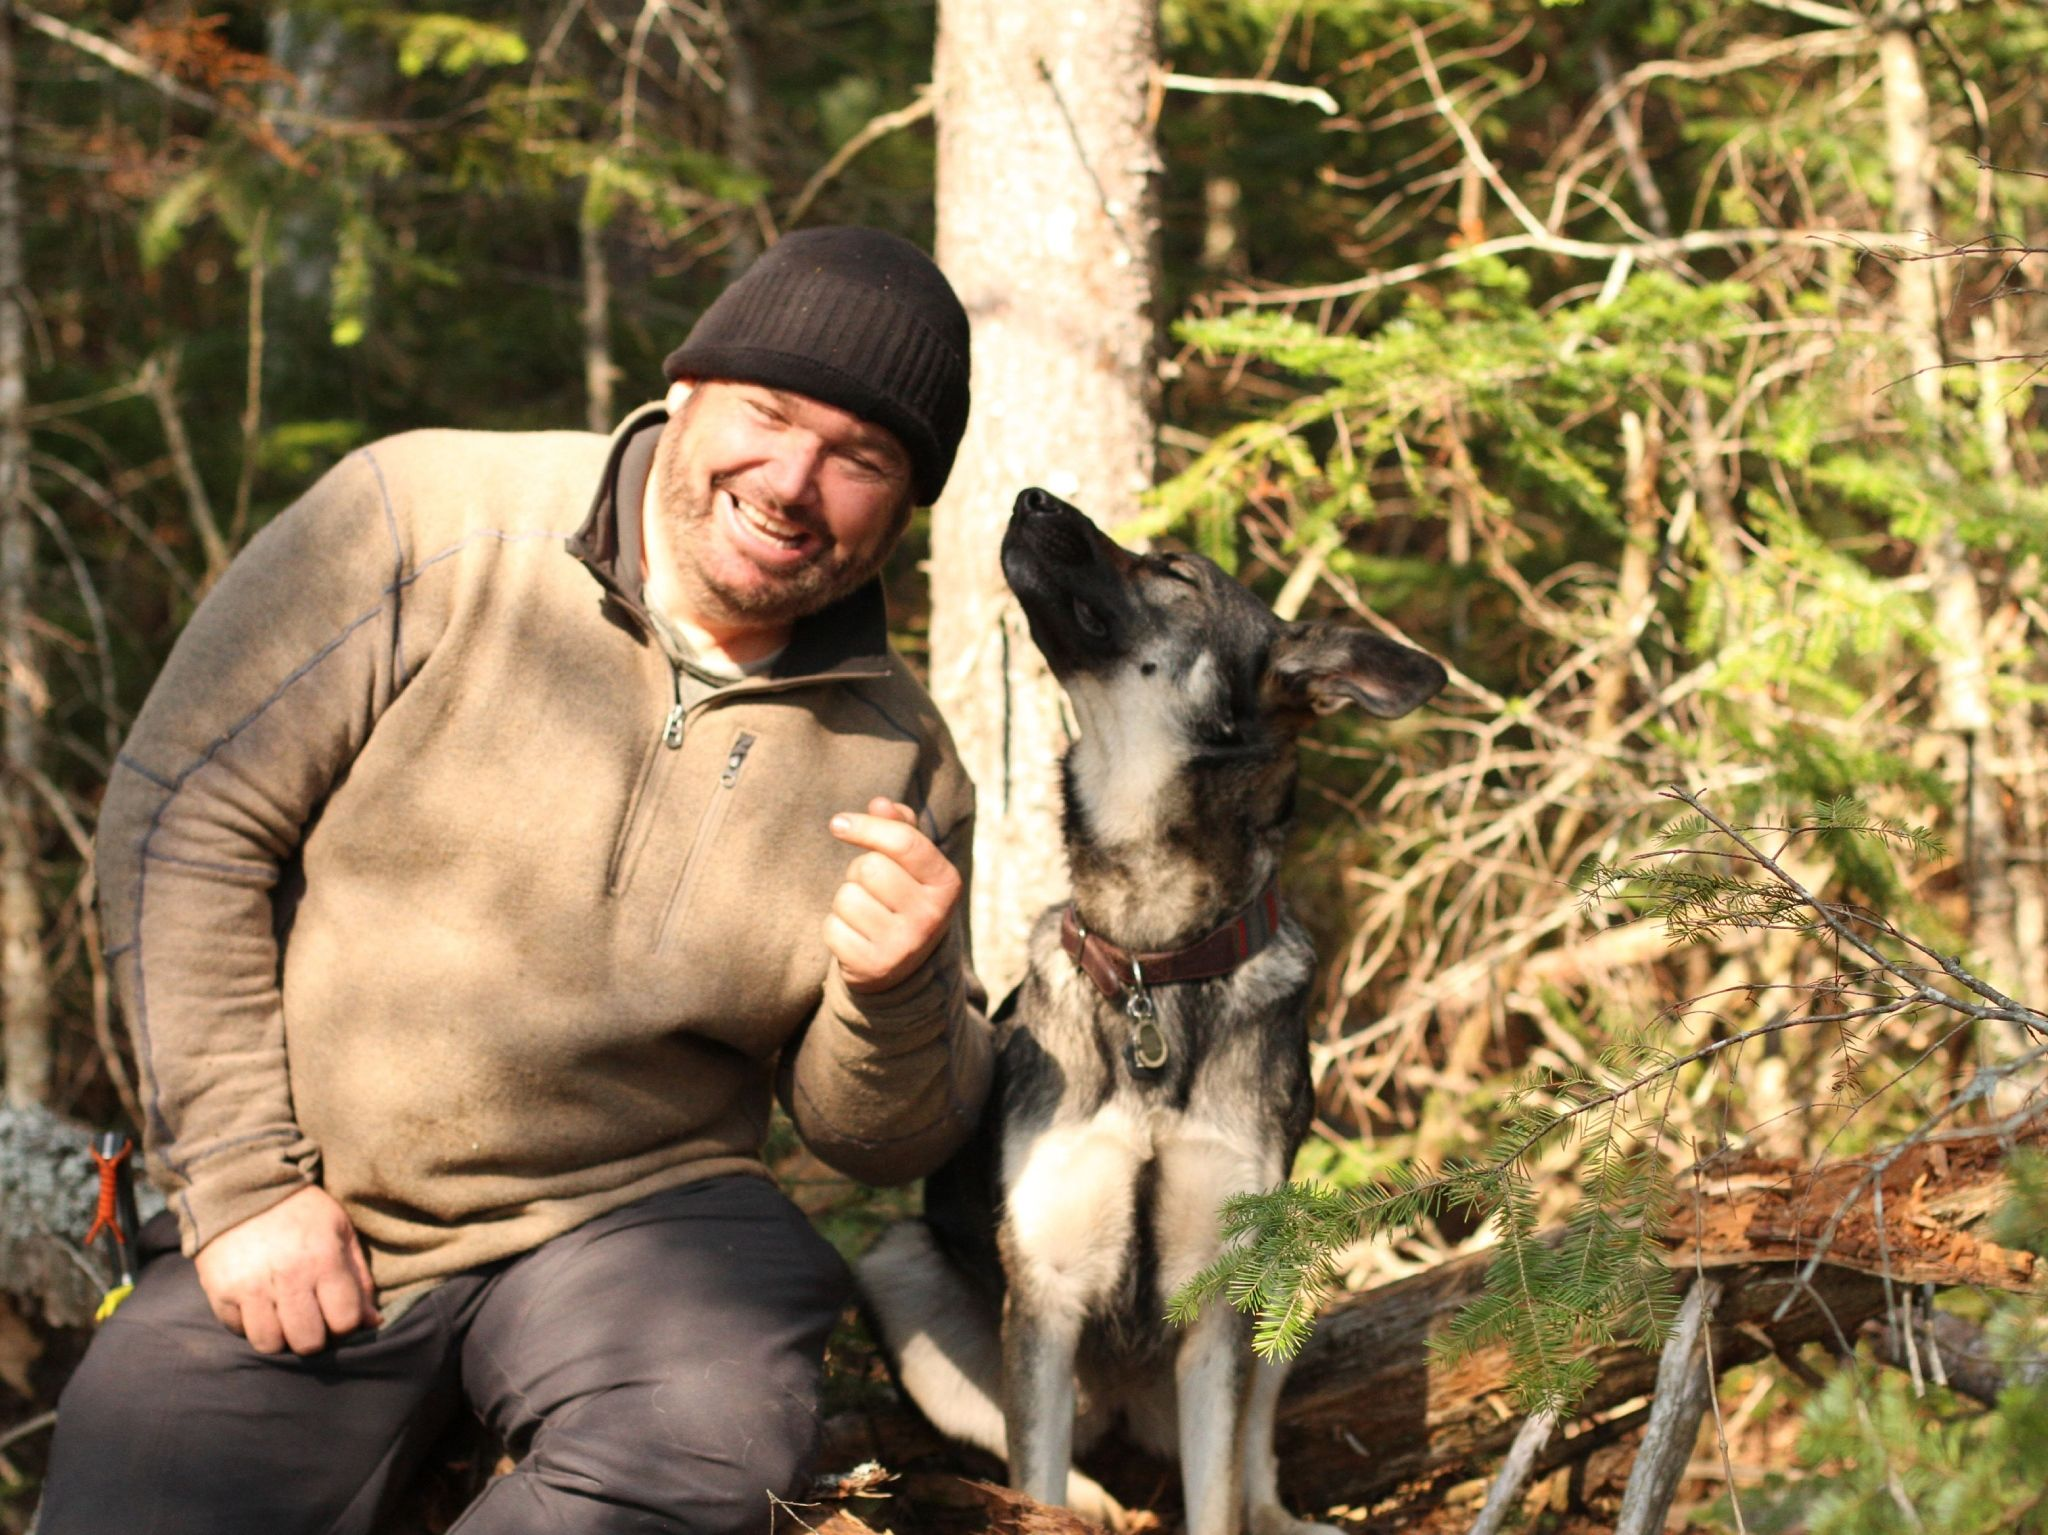 German shepherd Nala looks to her owner, Chad. This is from Called to the Wild. [Photo of the day - August 2021]